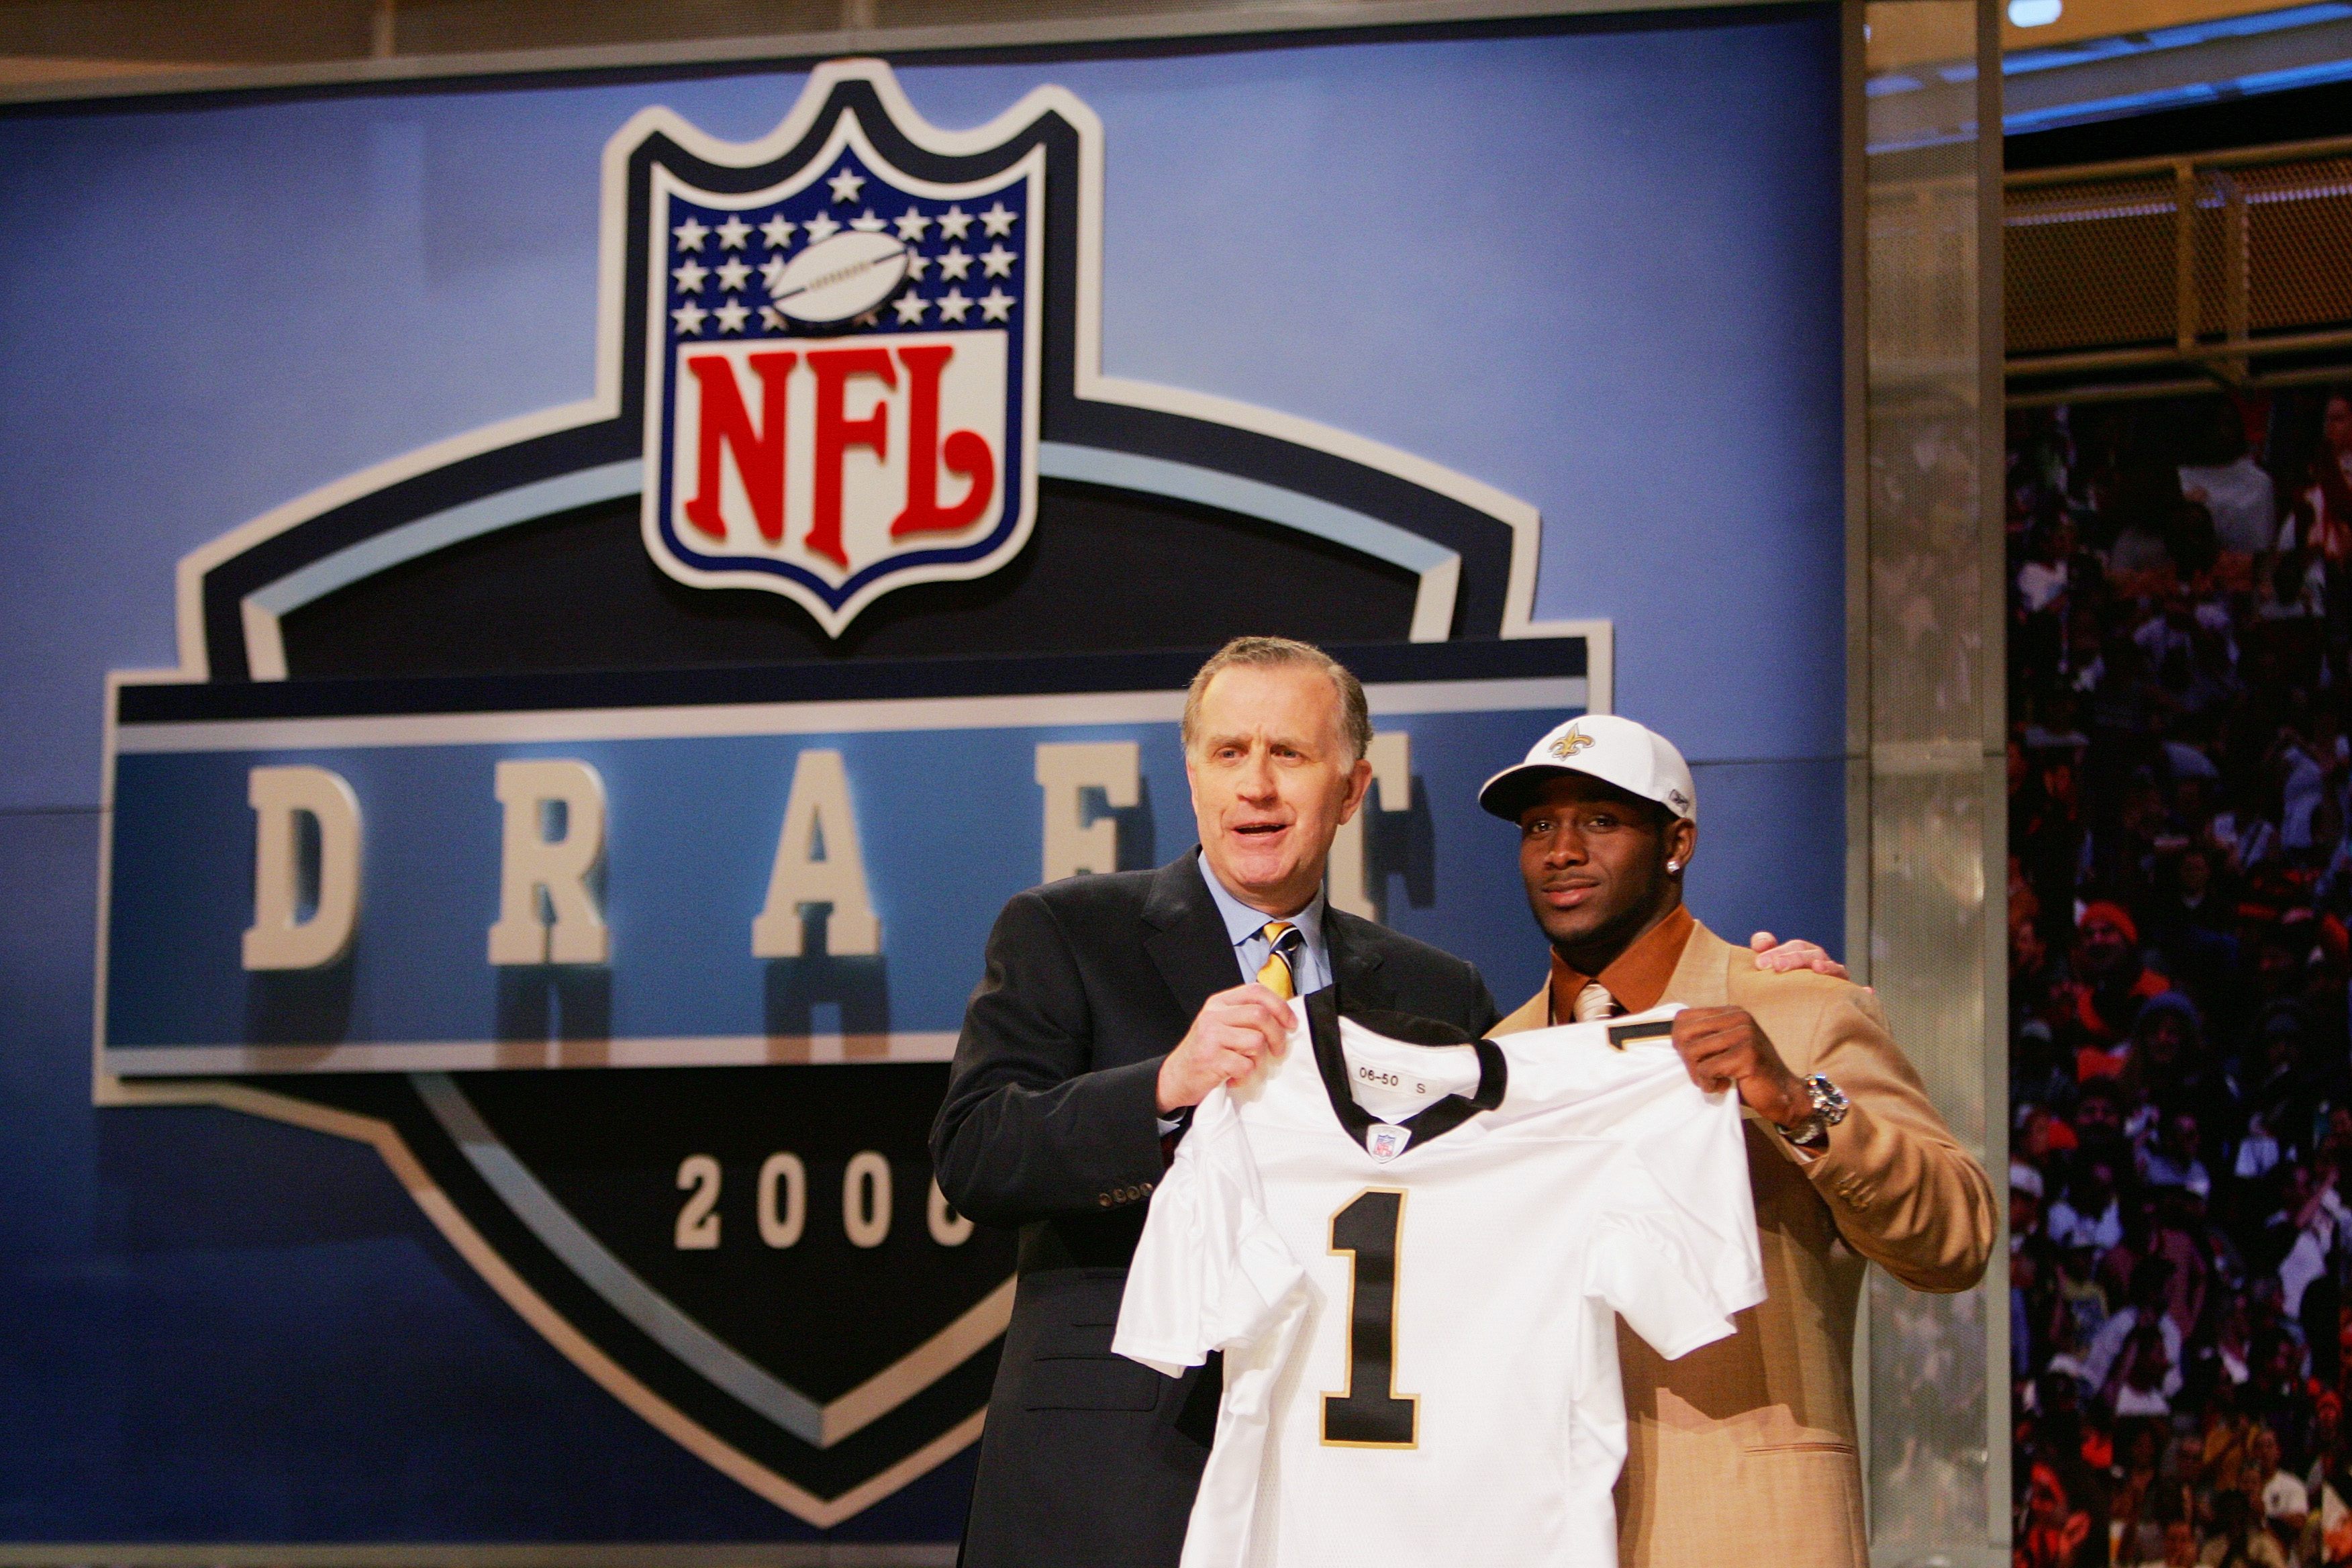 NEW YORK - APRIL 29:  Commissioner Paul Tagliabue and Reggie Bush pose for a photo after Bush was drafted by the New Orleans Saints during the 2006 NFL Draft on April 29, 2006 at Radio City Music Hall in New York, New York. (Photo by Chris Trotman/Getty I